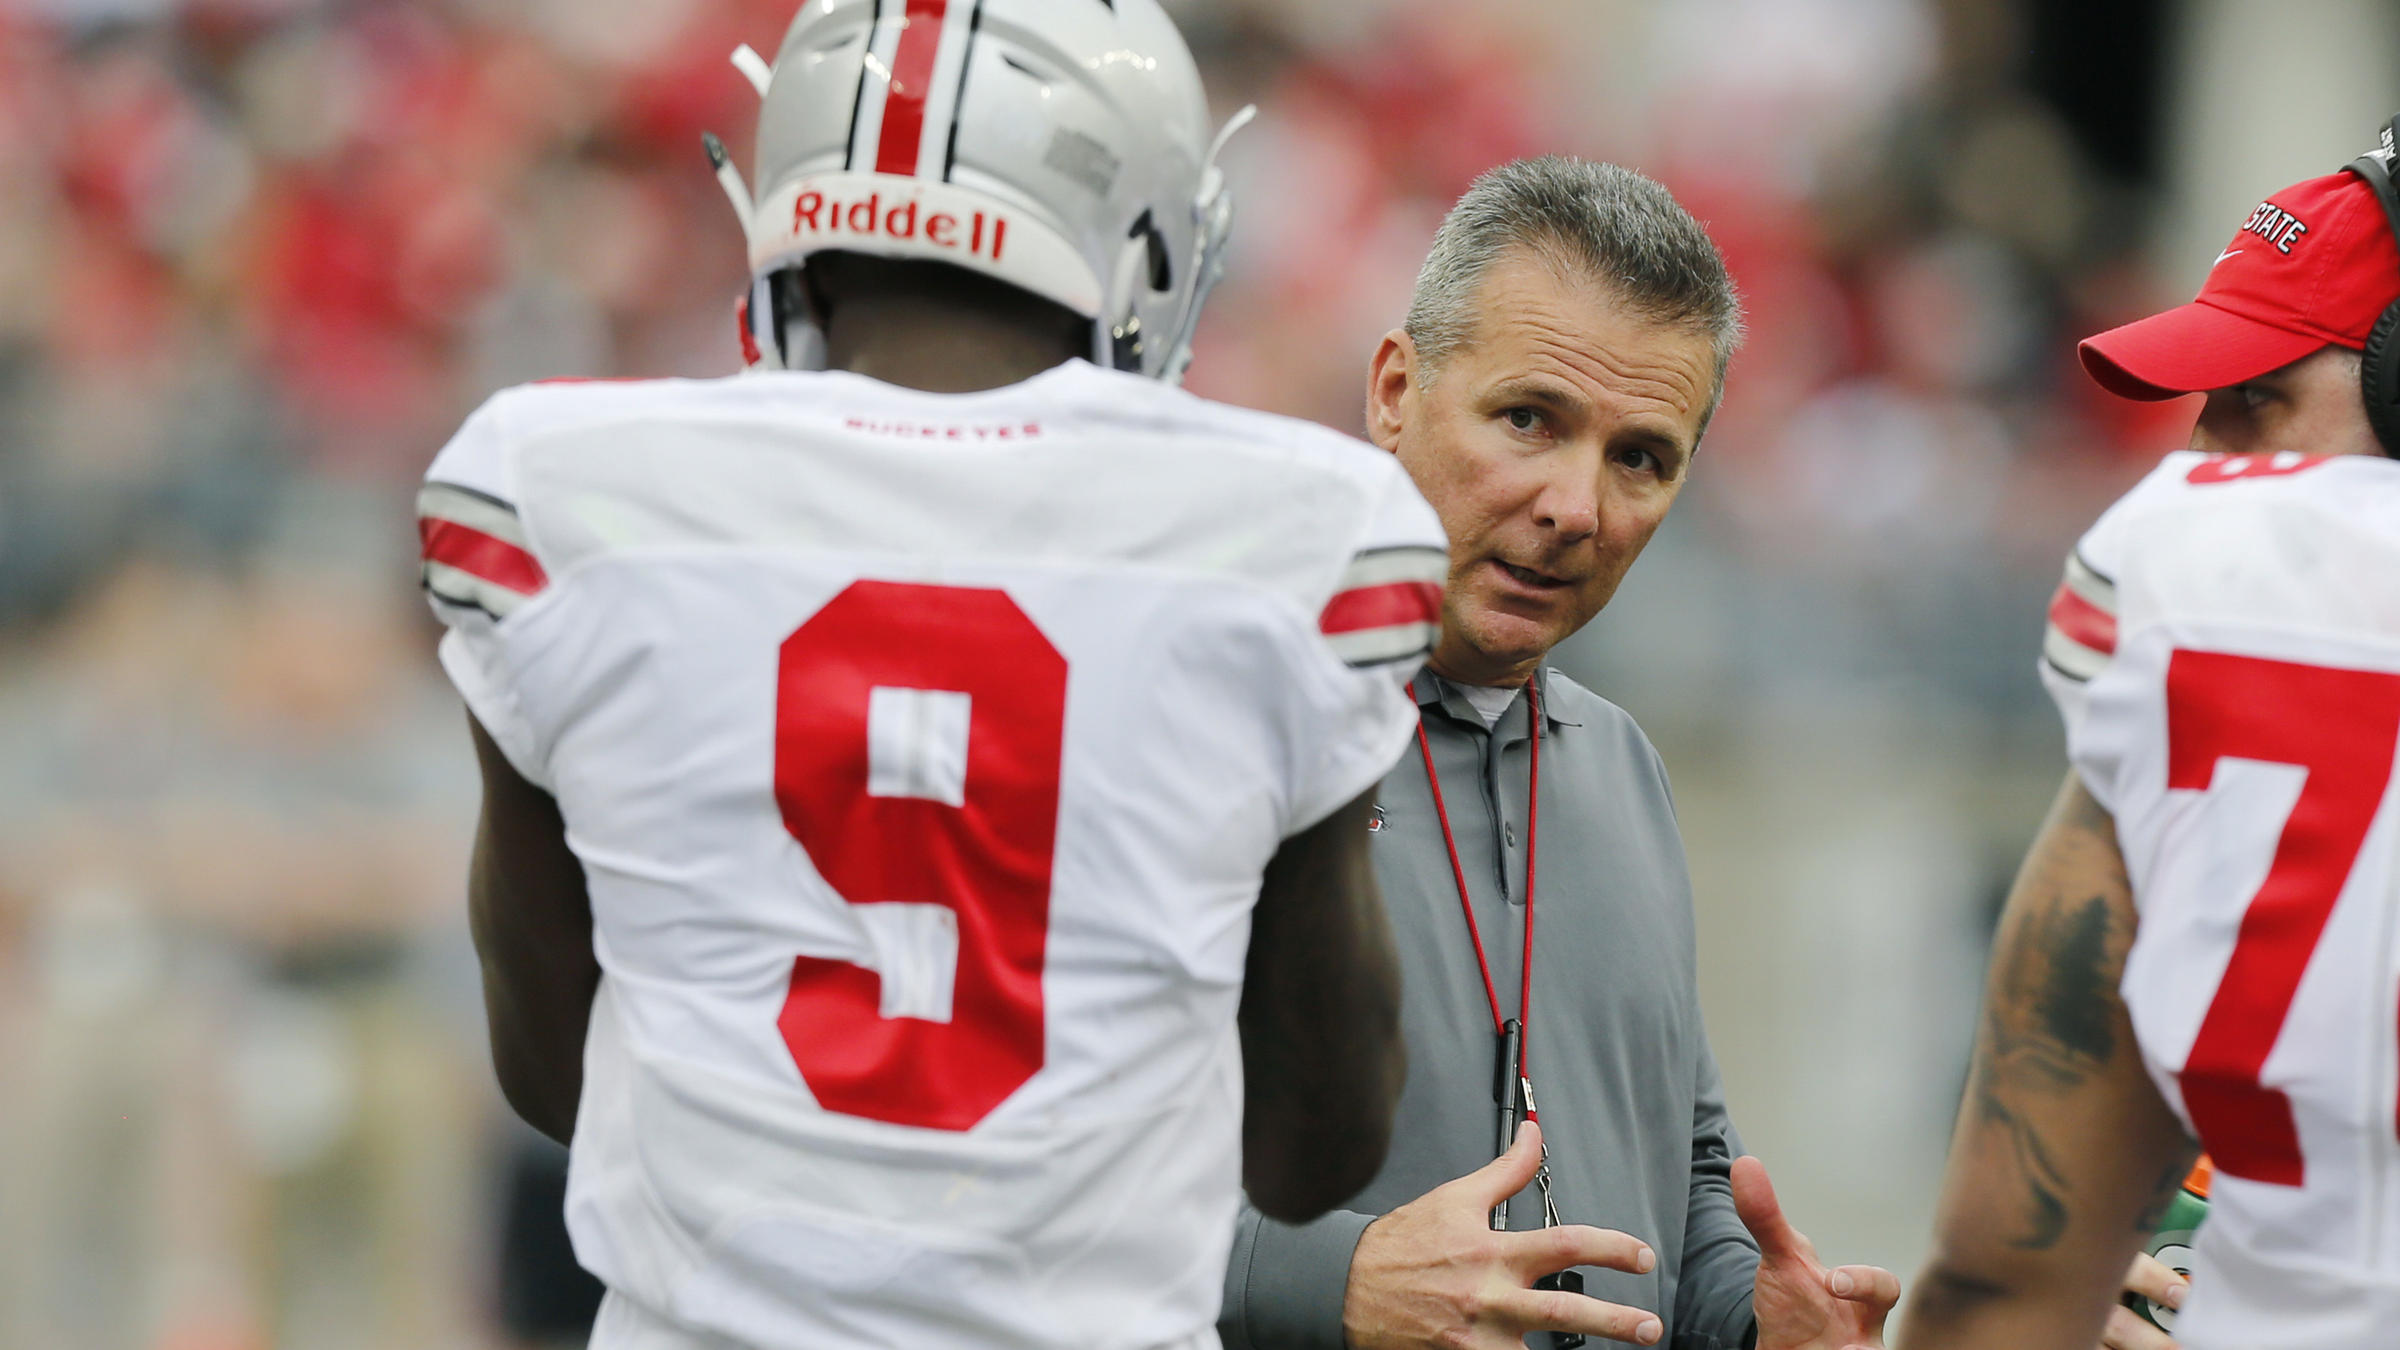 Ohio State Suspends Football Coach Amid Allegations He